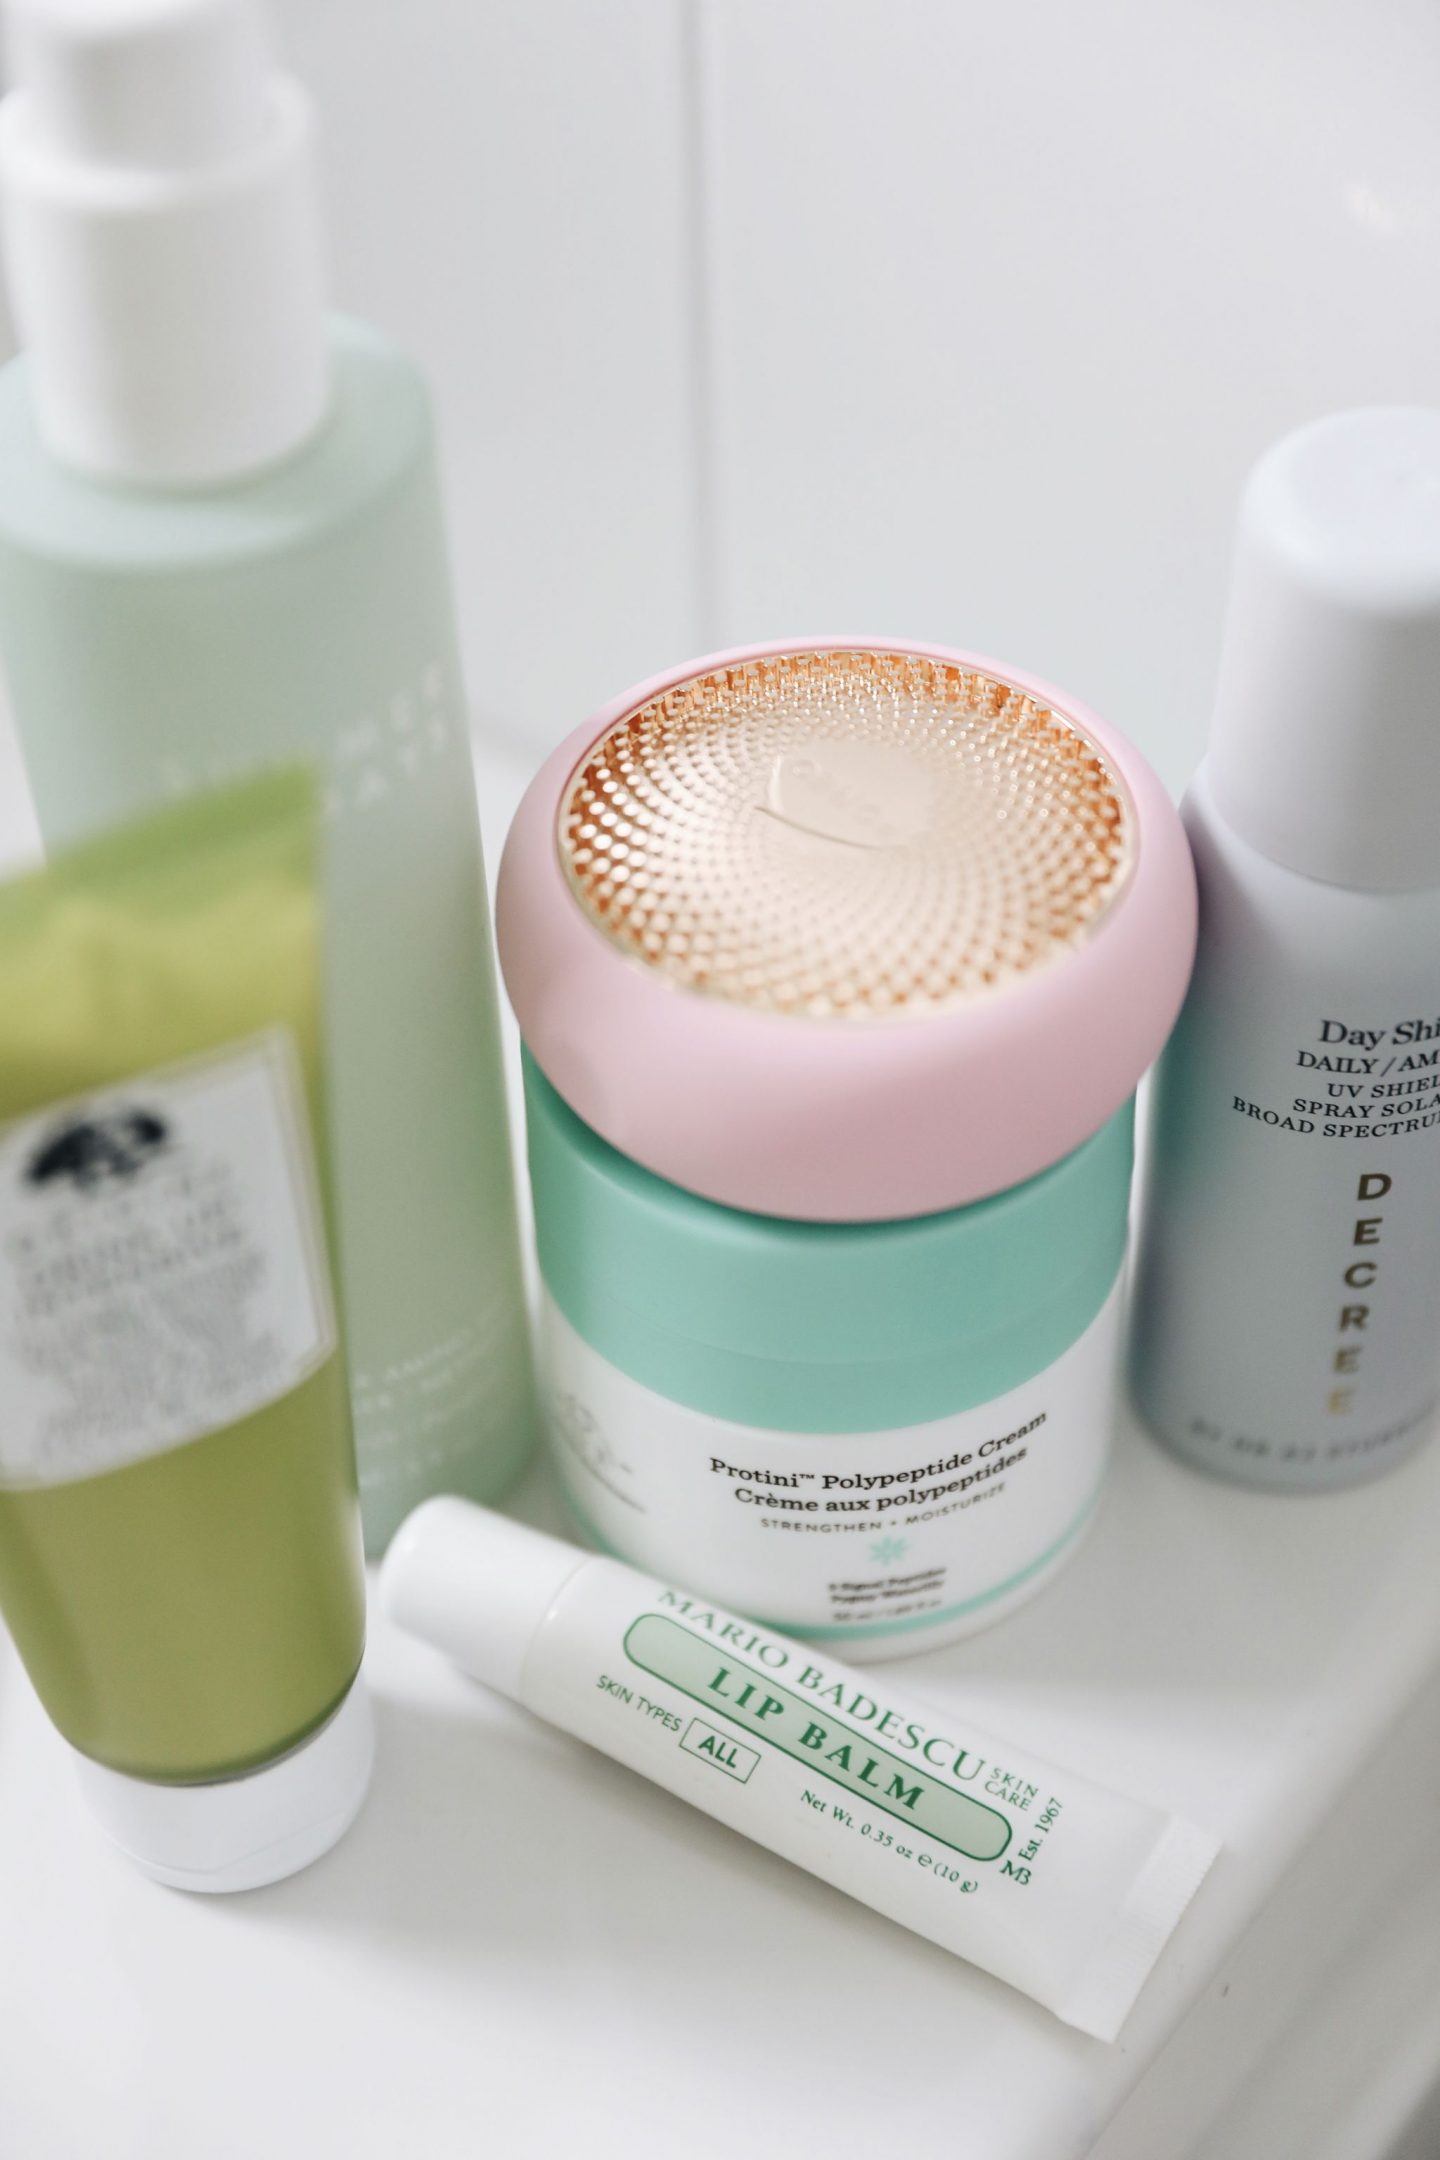 Here are 6 new skincare products that I have been using lately and absolutely LOVE!